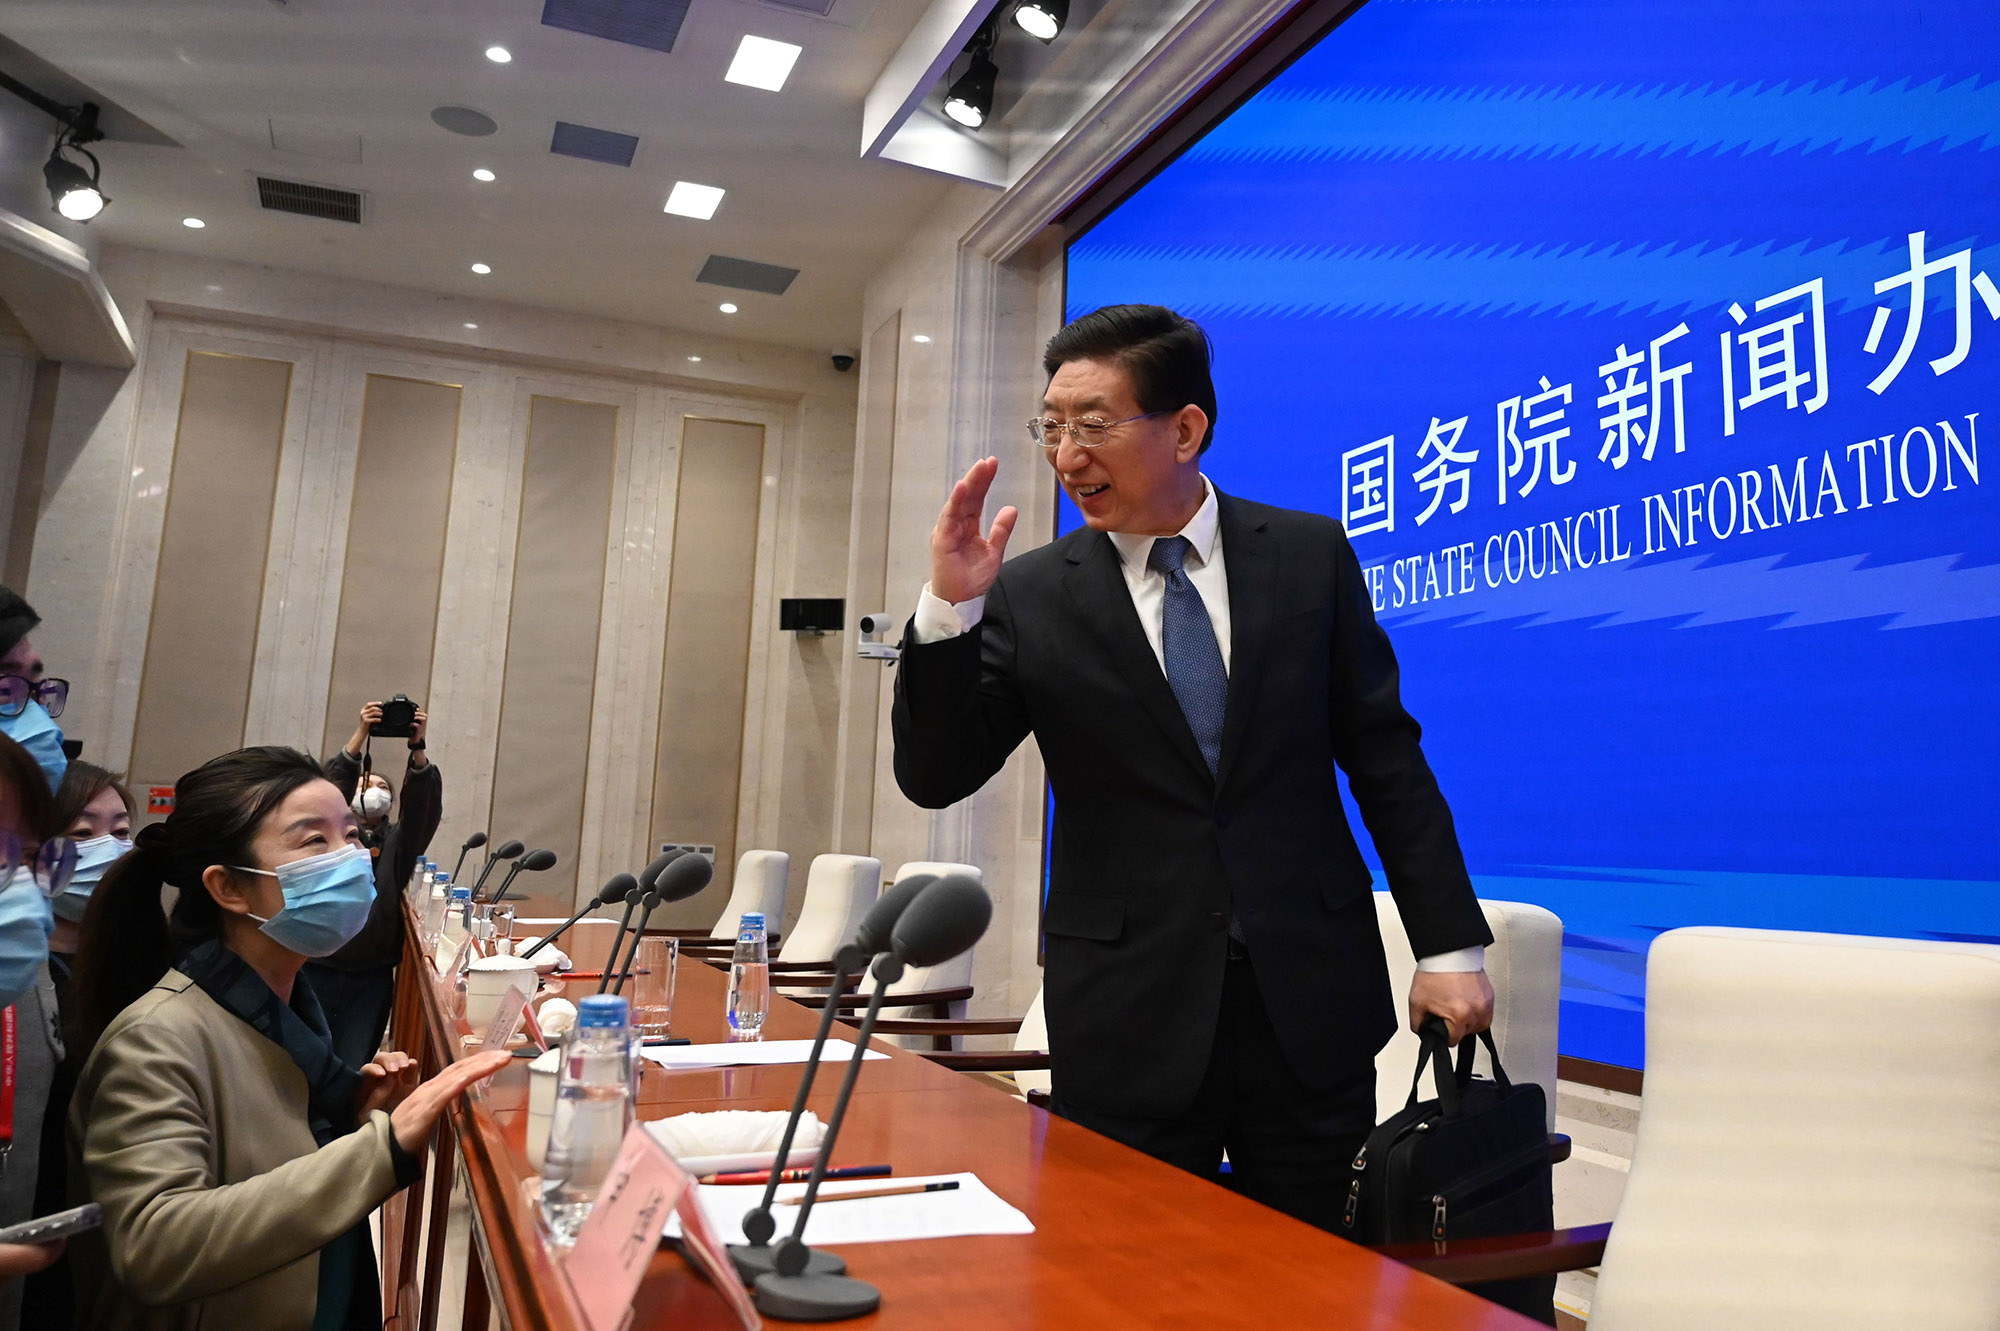 Zeng Yixin, a vice-minister of China's National Health Commission, leaves following a news conference in Beijing on Friday.